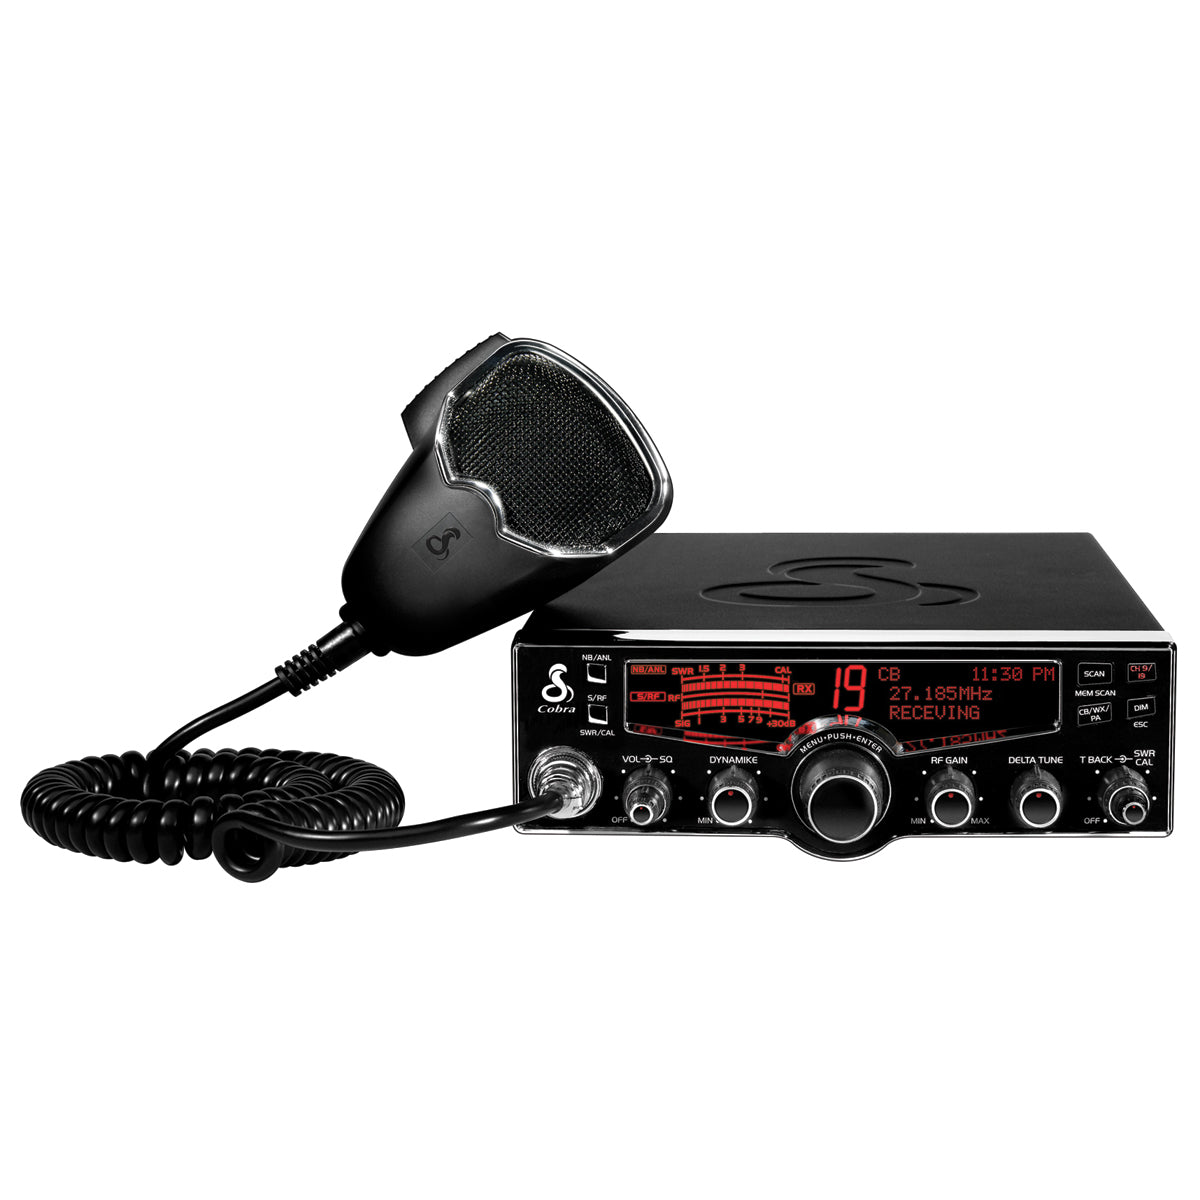 29LX CB Radio with NOAA Weather & 4-Color LCD Display